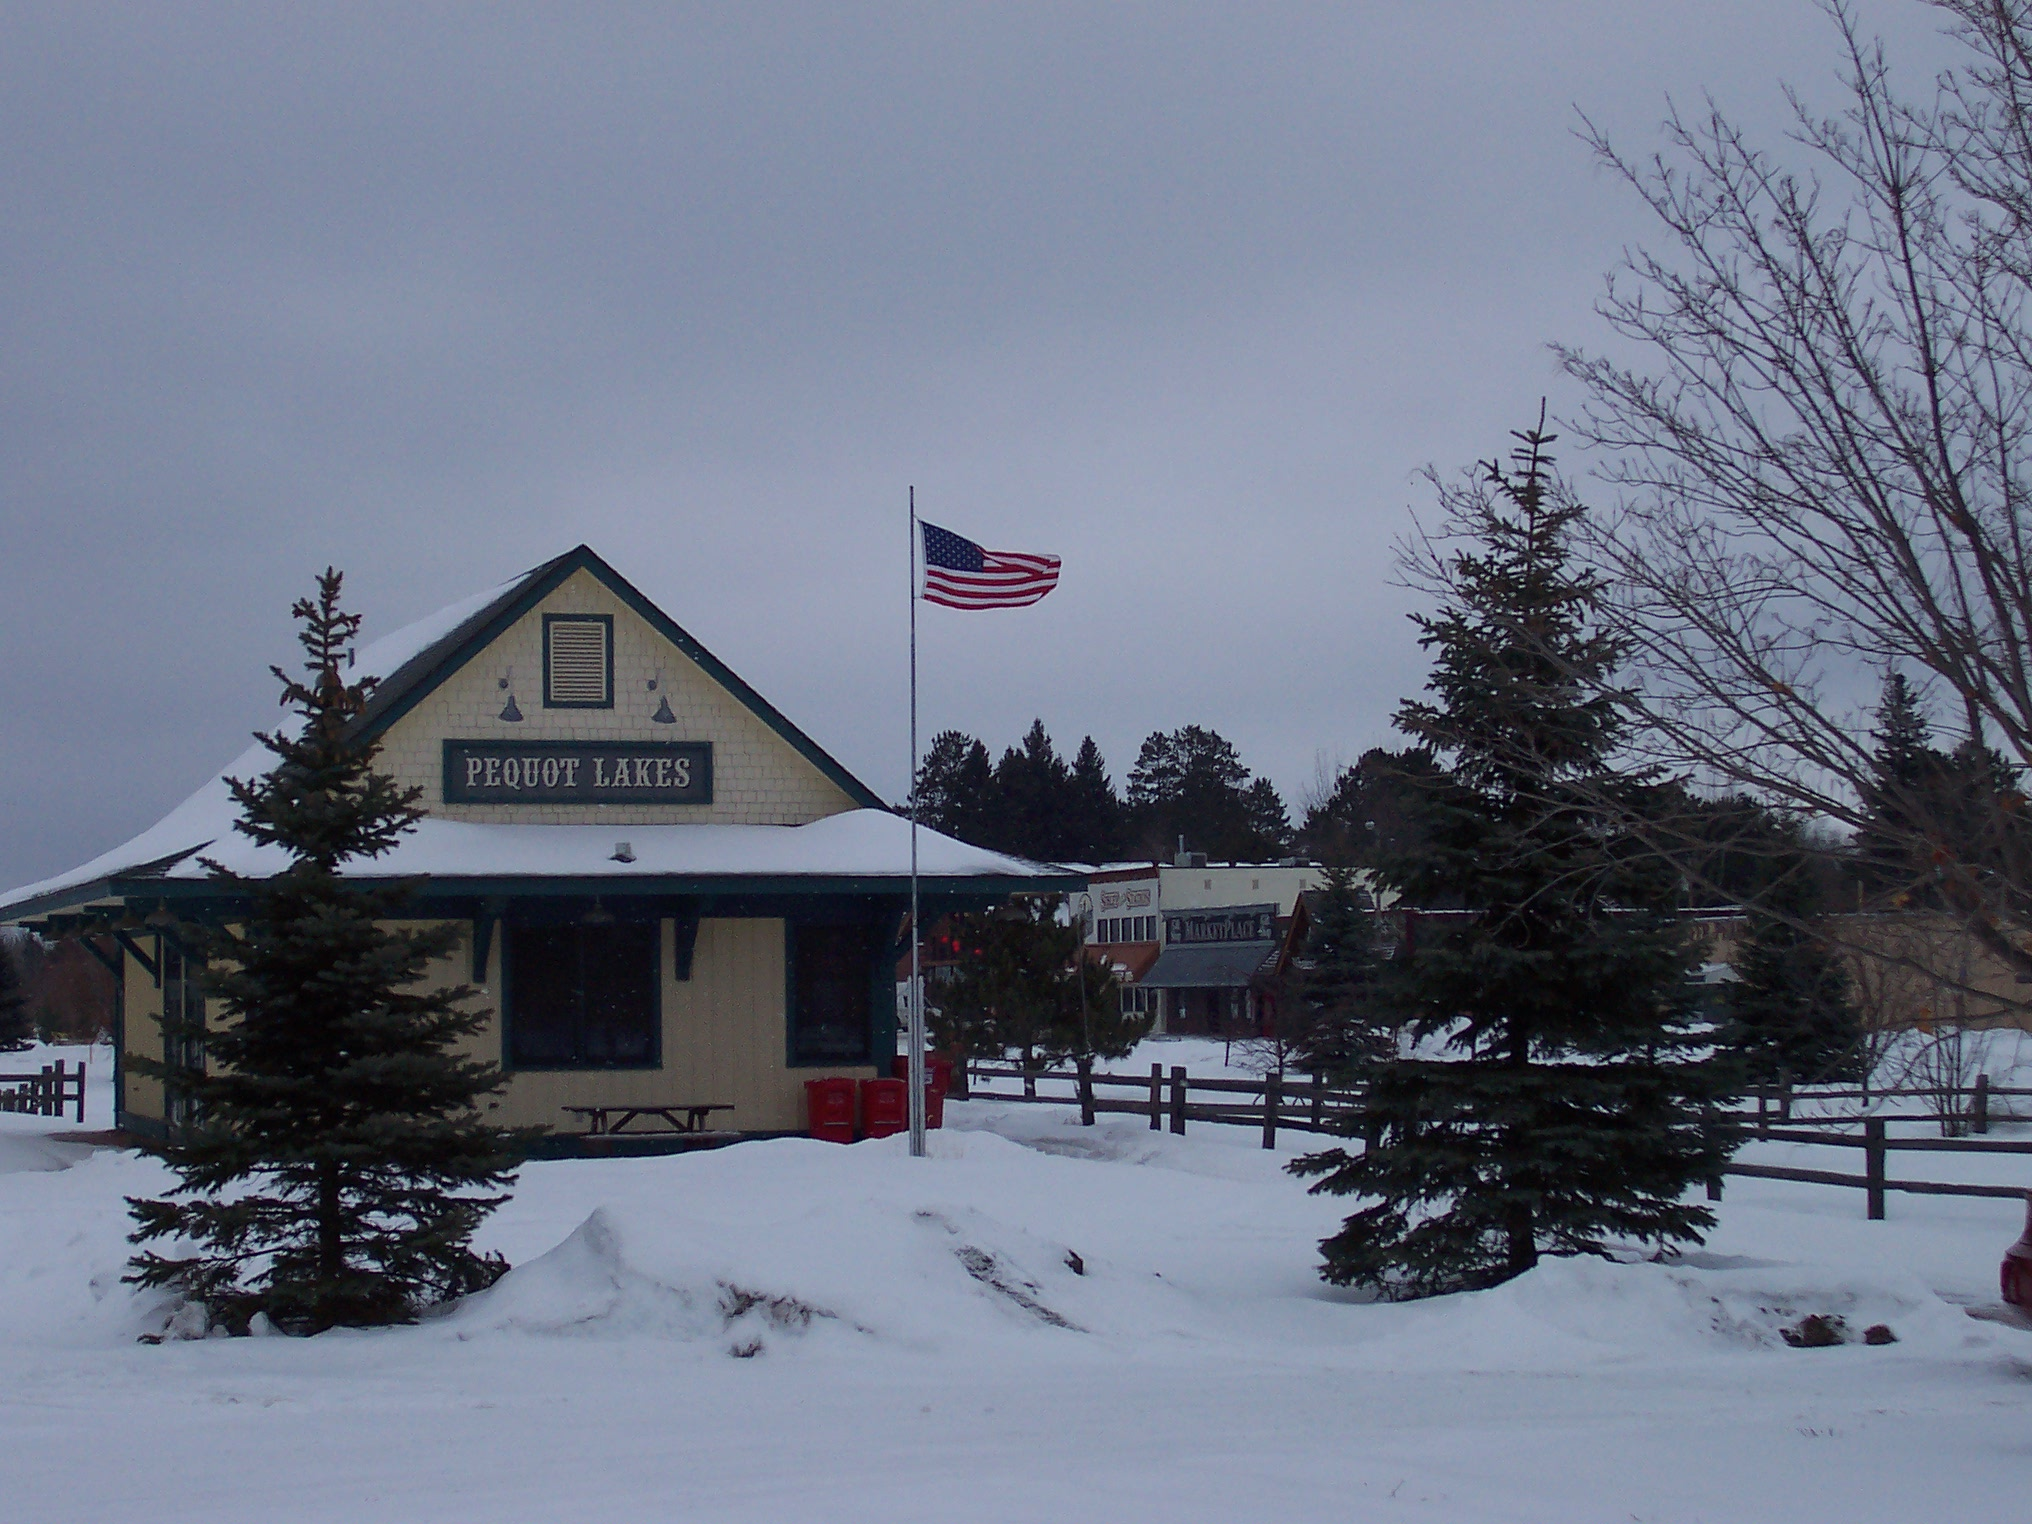 Pequot Lakes depot in winter. Image via Wikimedia Commons.